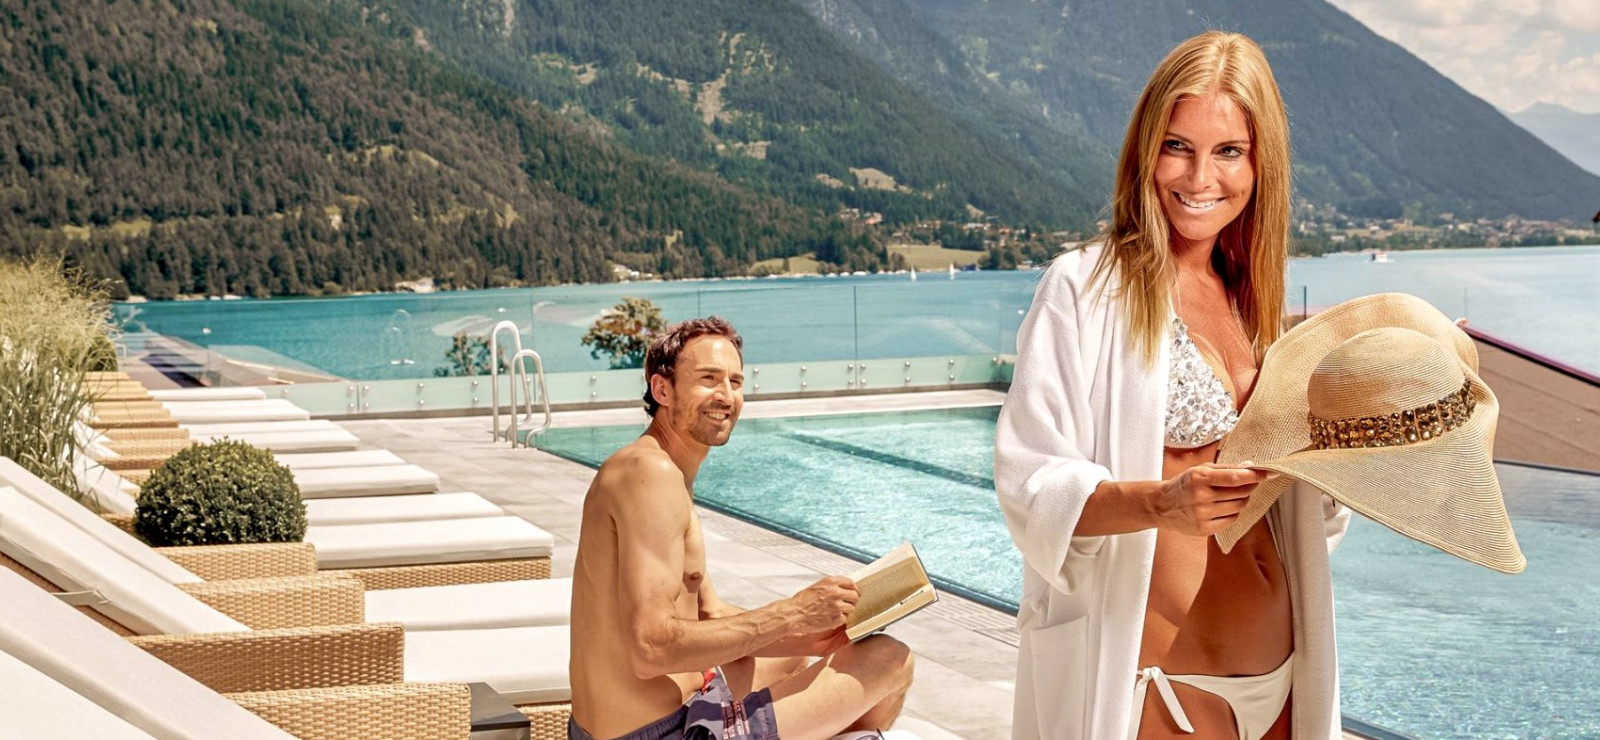 Wellnesshotel Alpine Wellnesshotel Karwendel | Pertisau